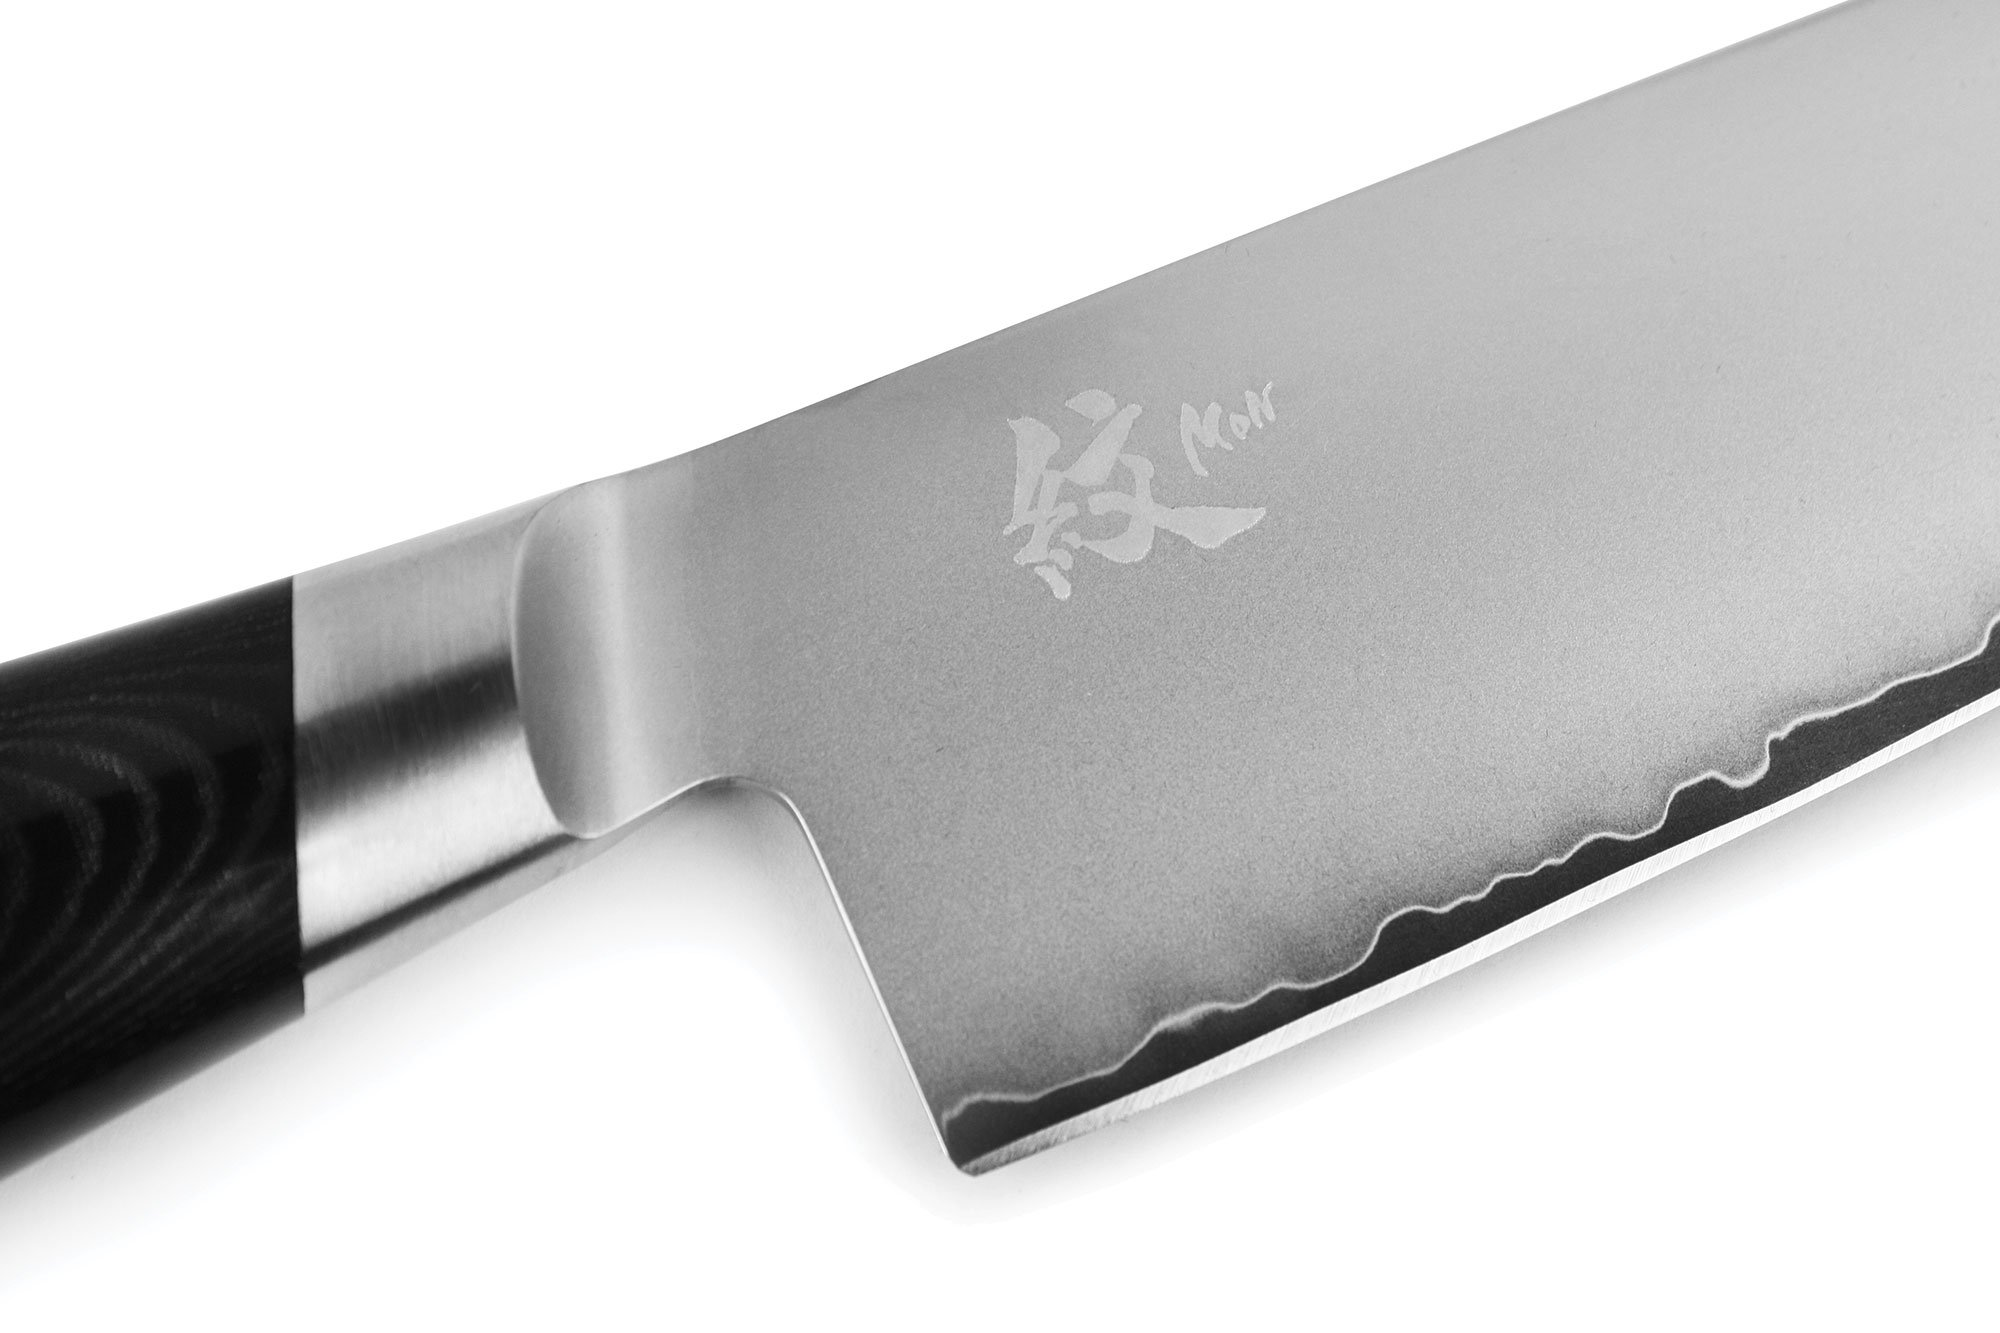 Yaxell Mon 8'' Chef's Knife - Made in Japan - VG10 Stainless Steel Gyuto with Micarta Handle by Yaxell (Image #2)